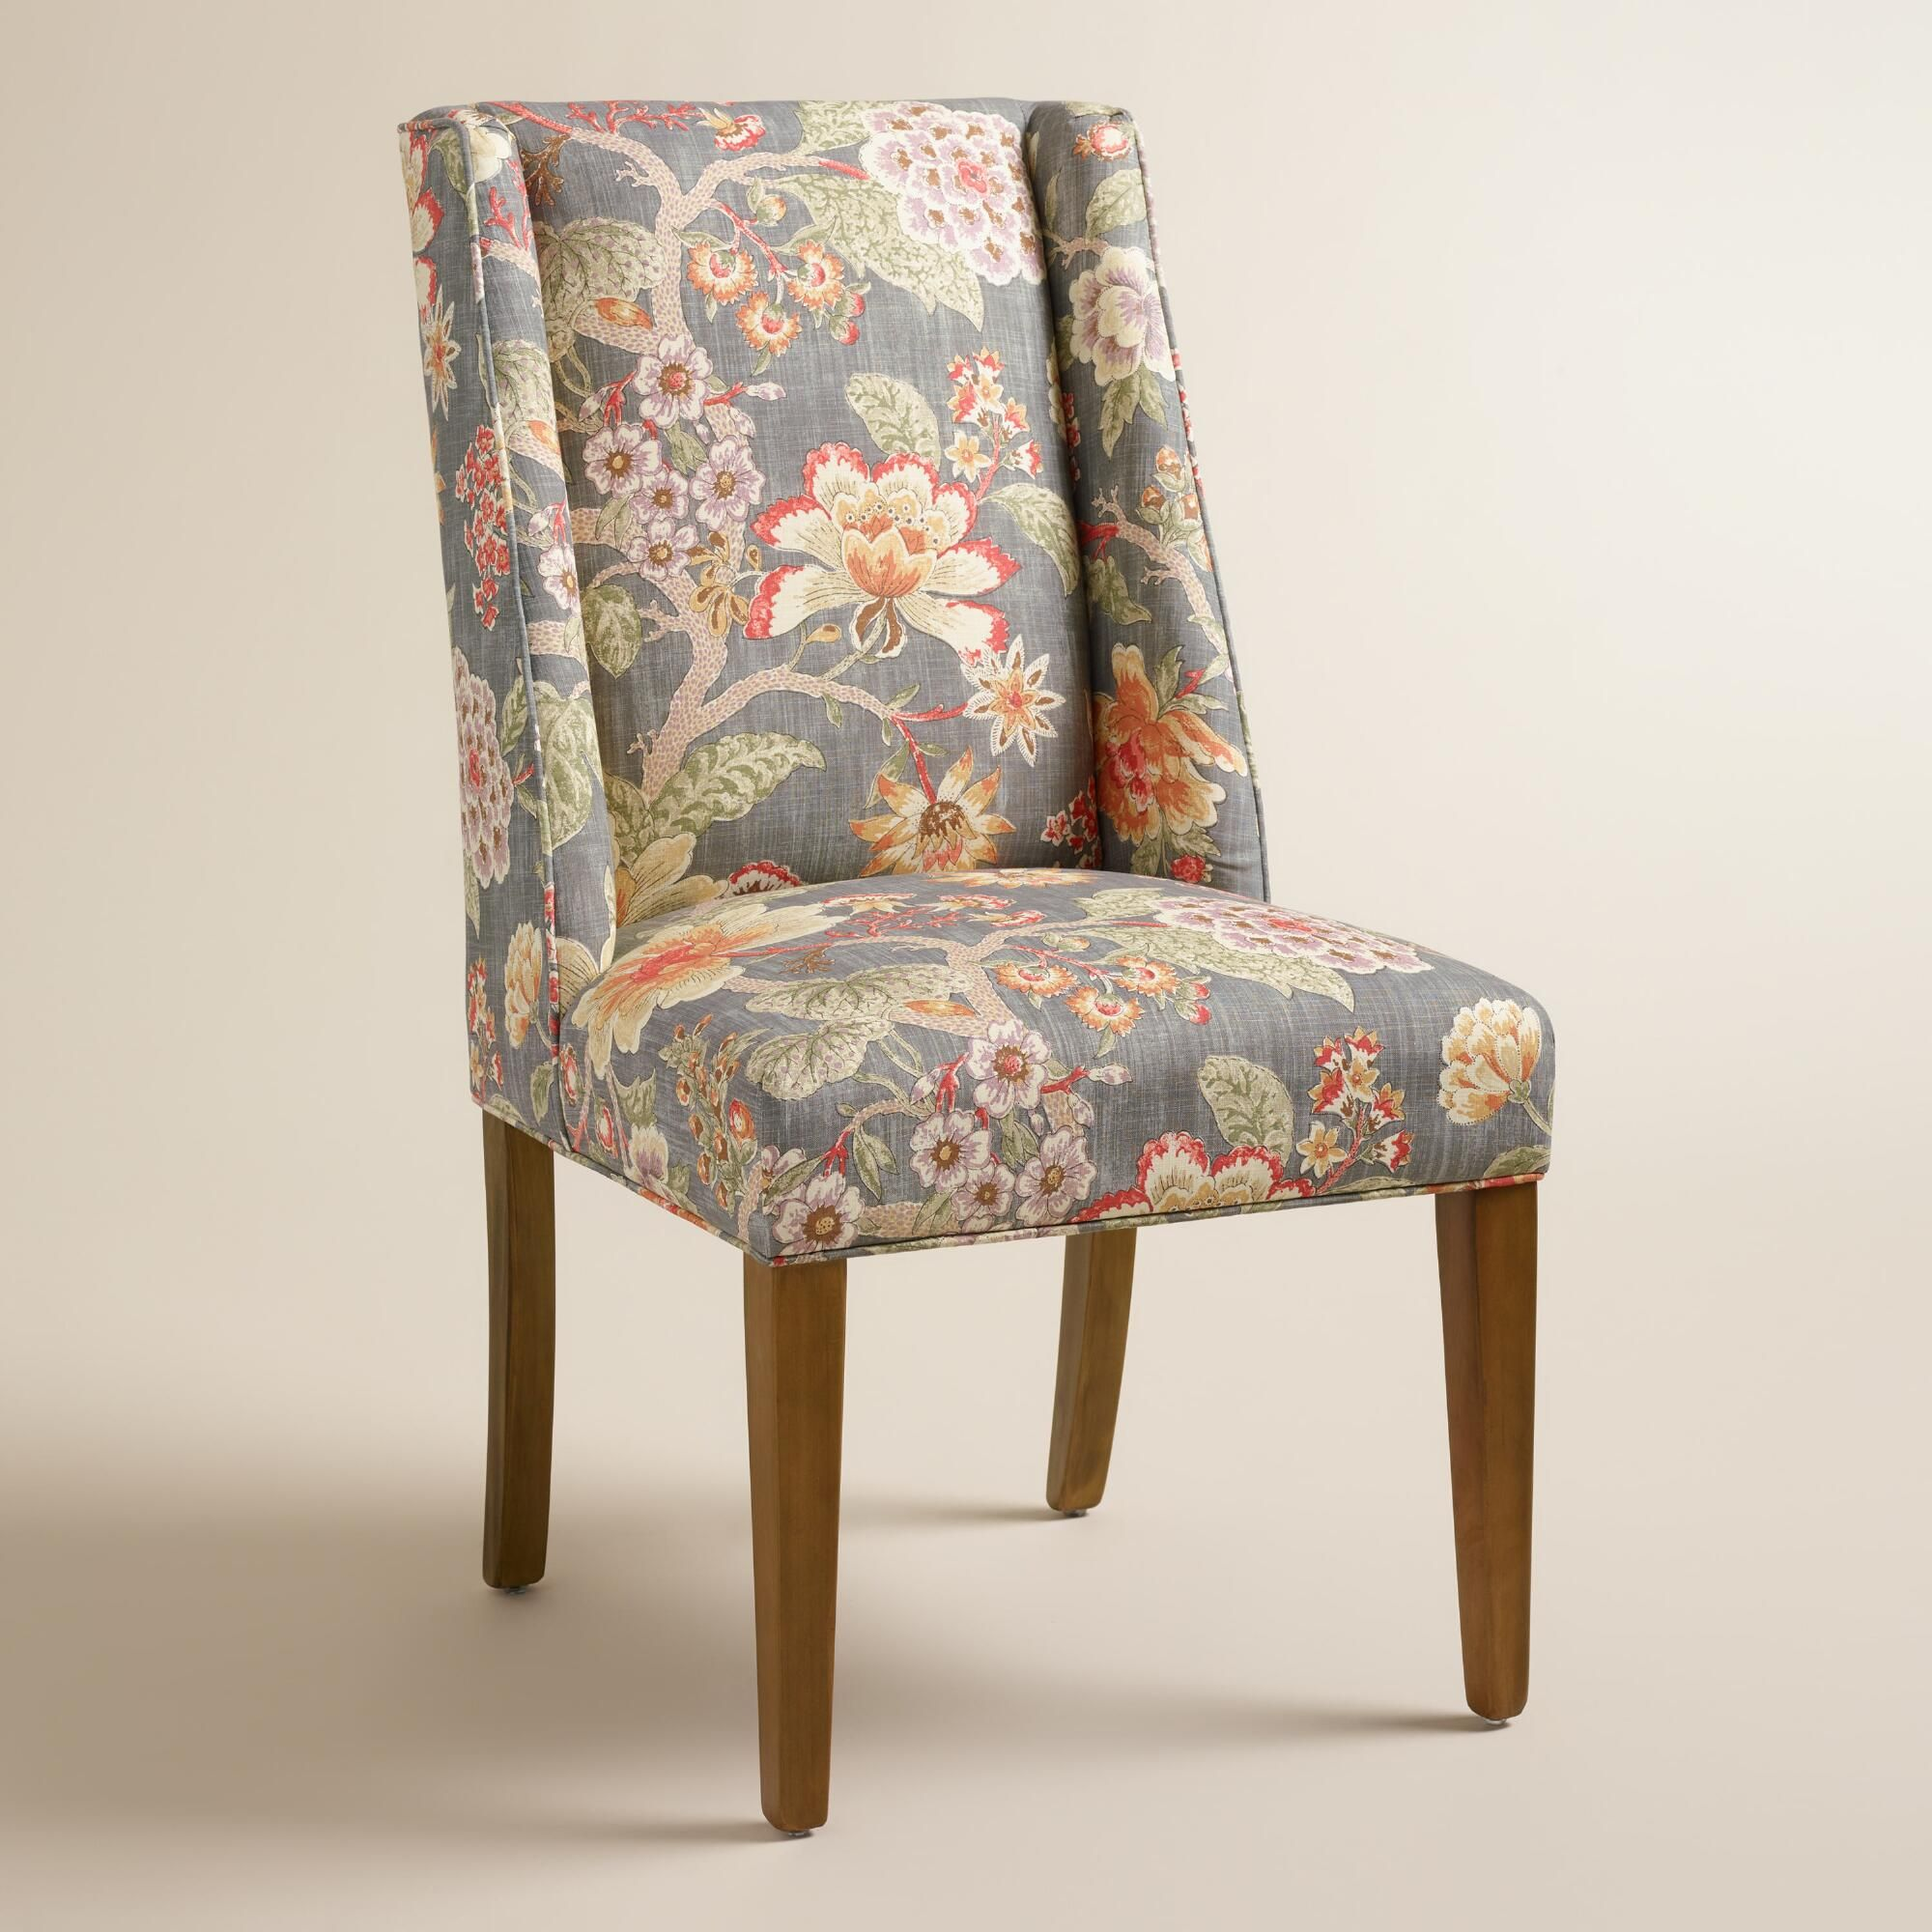 Room with a View Floral Lawford Dining Chair – Floral Dining Chairs